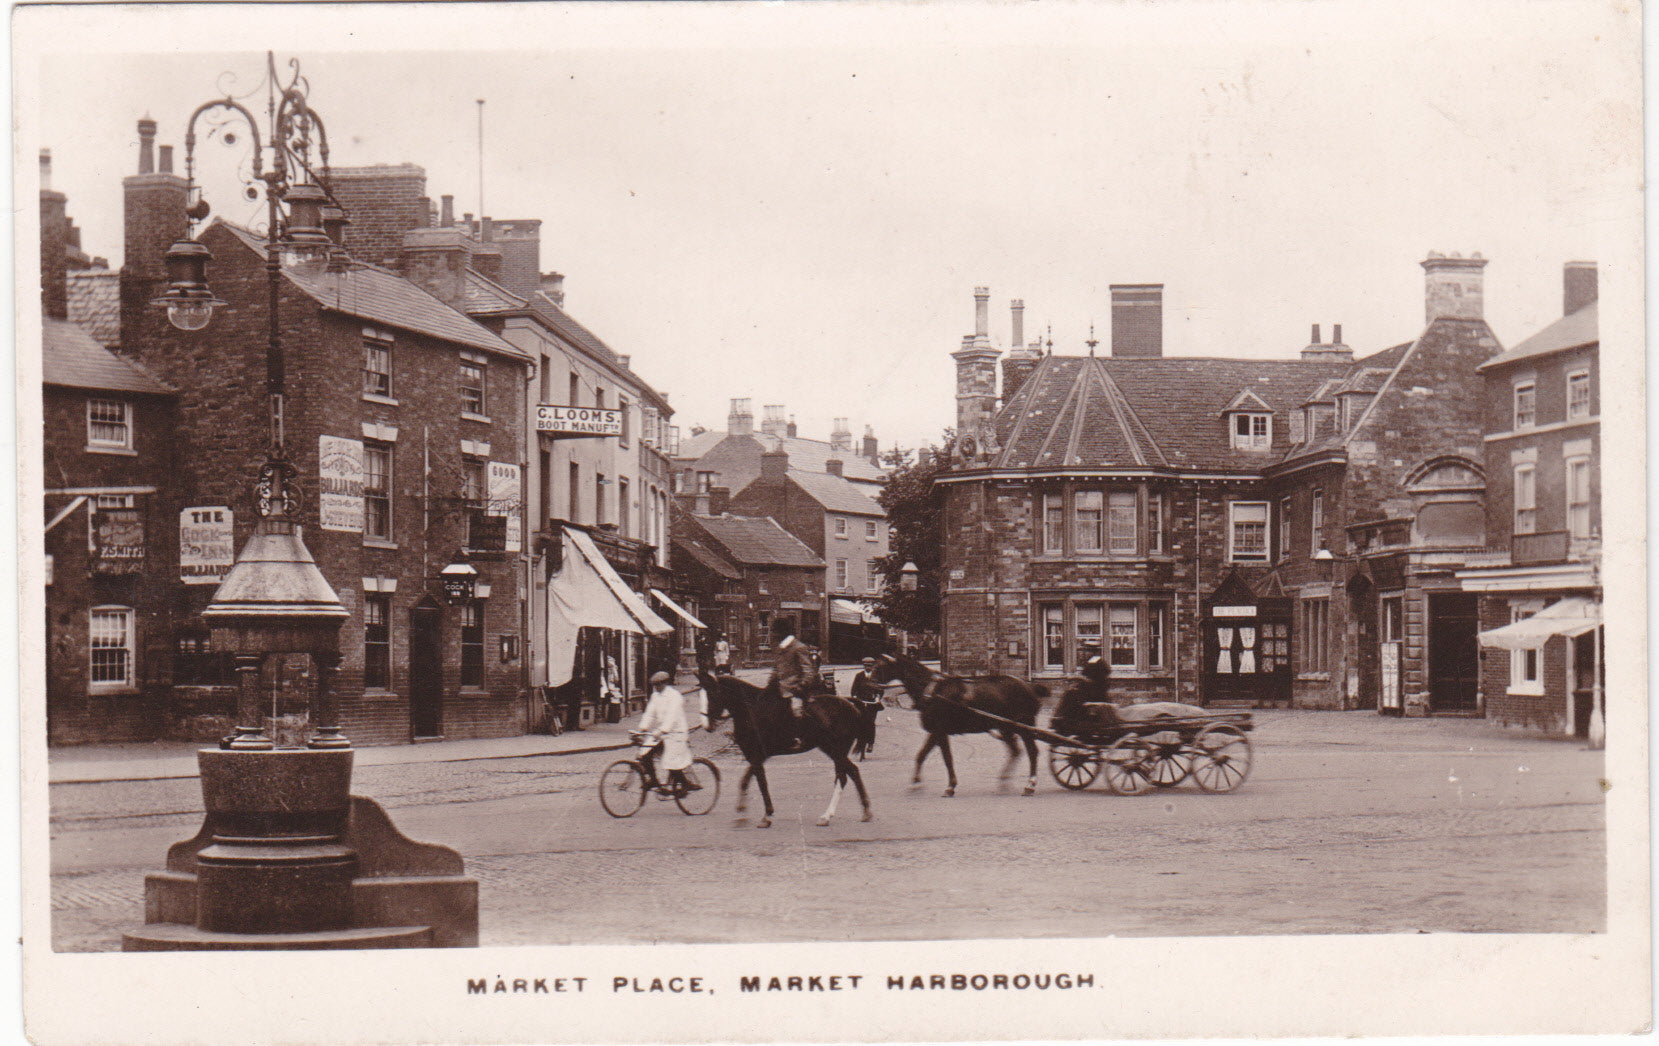 Market Place, Market Harborough, old real photo postcard